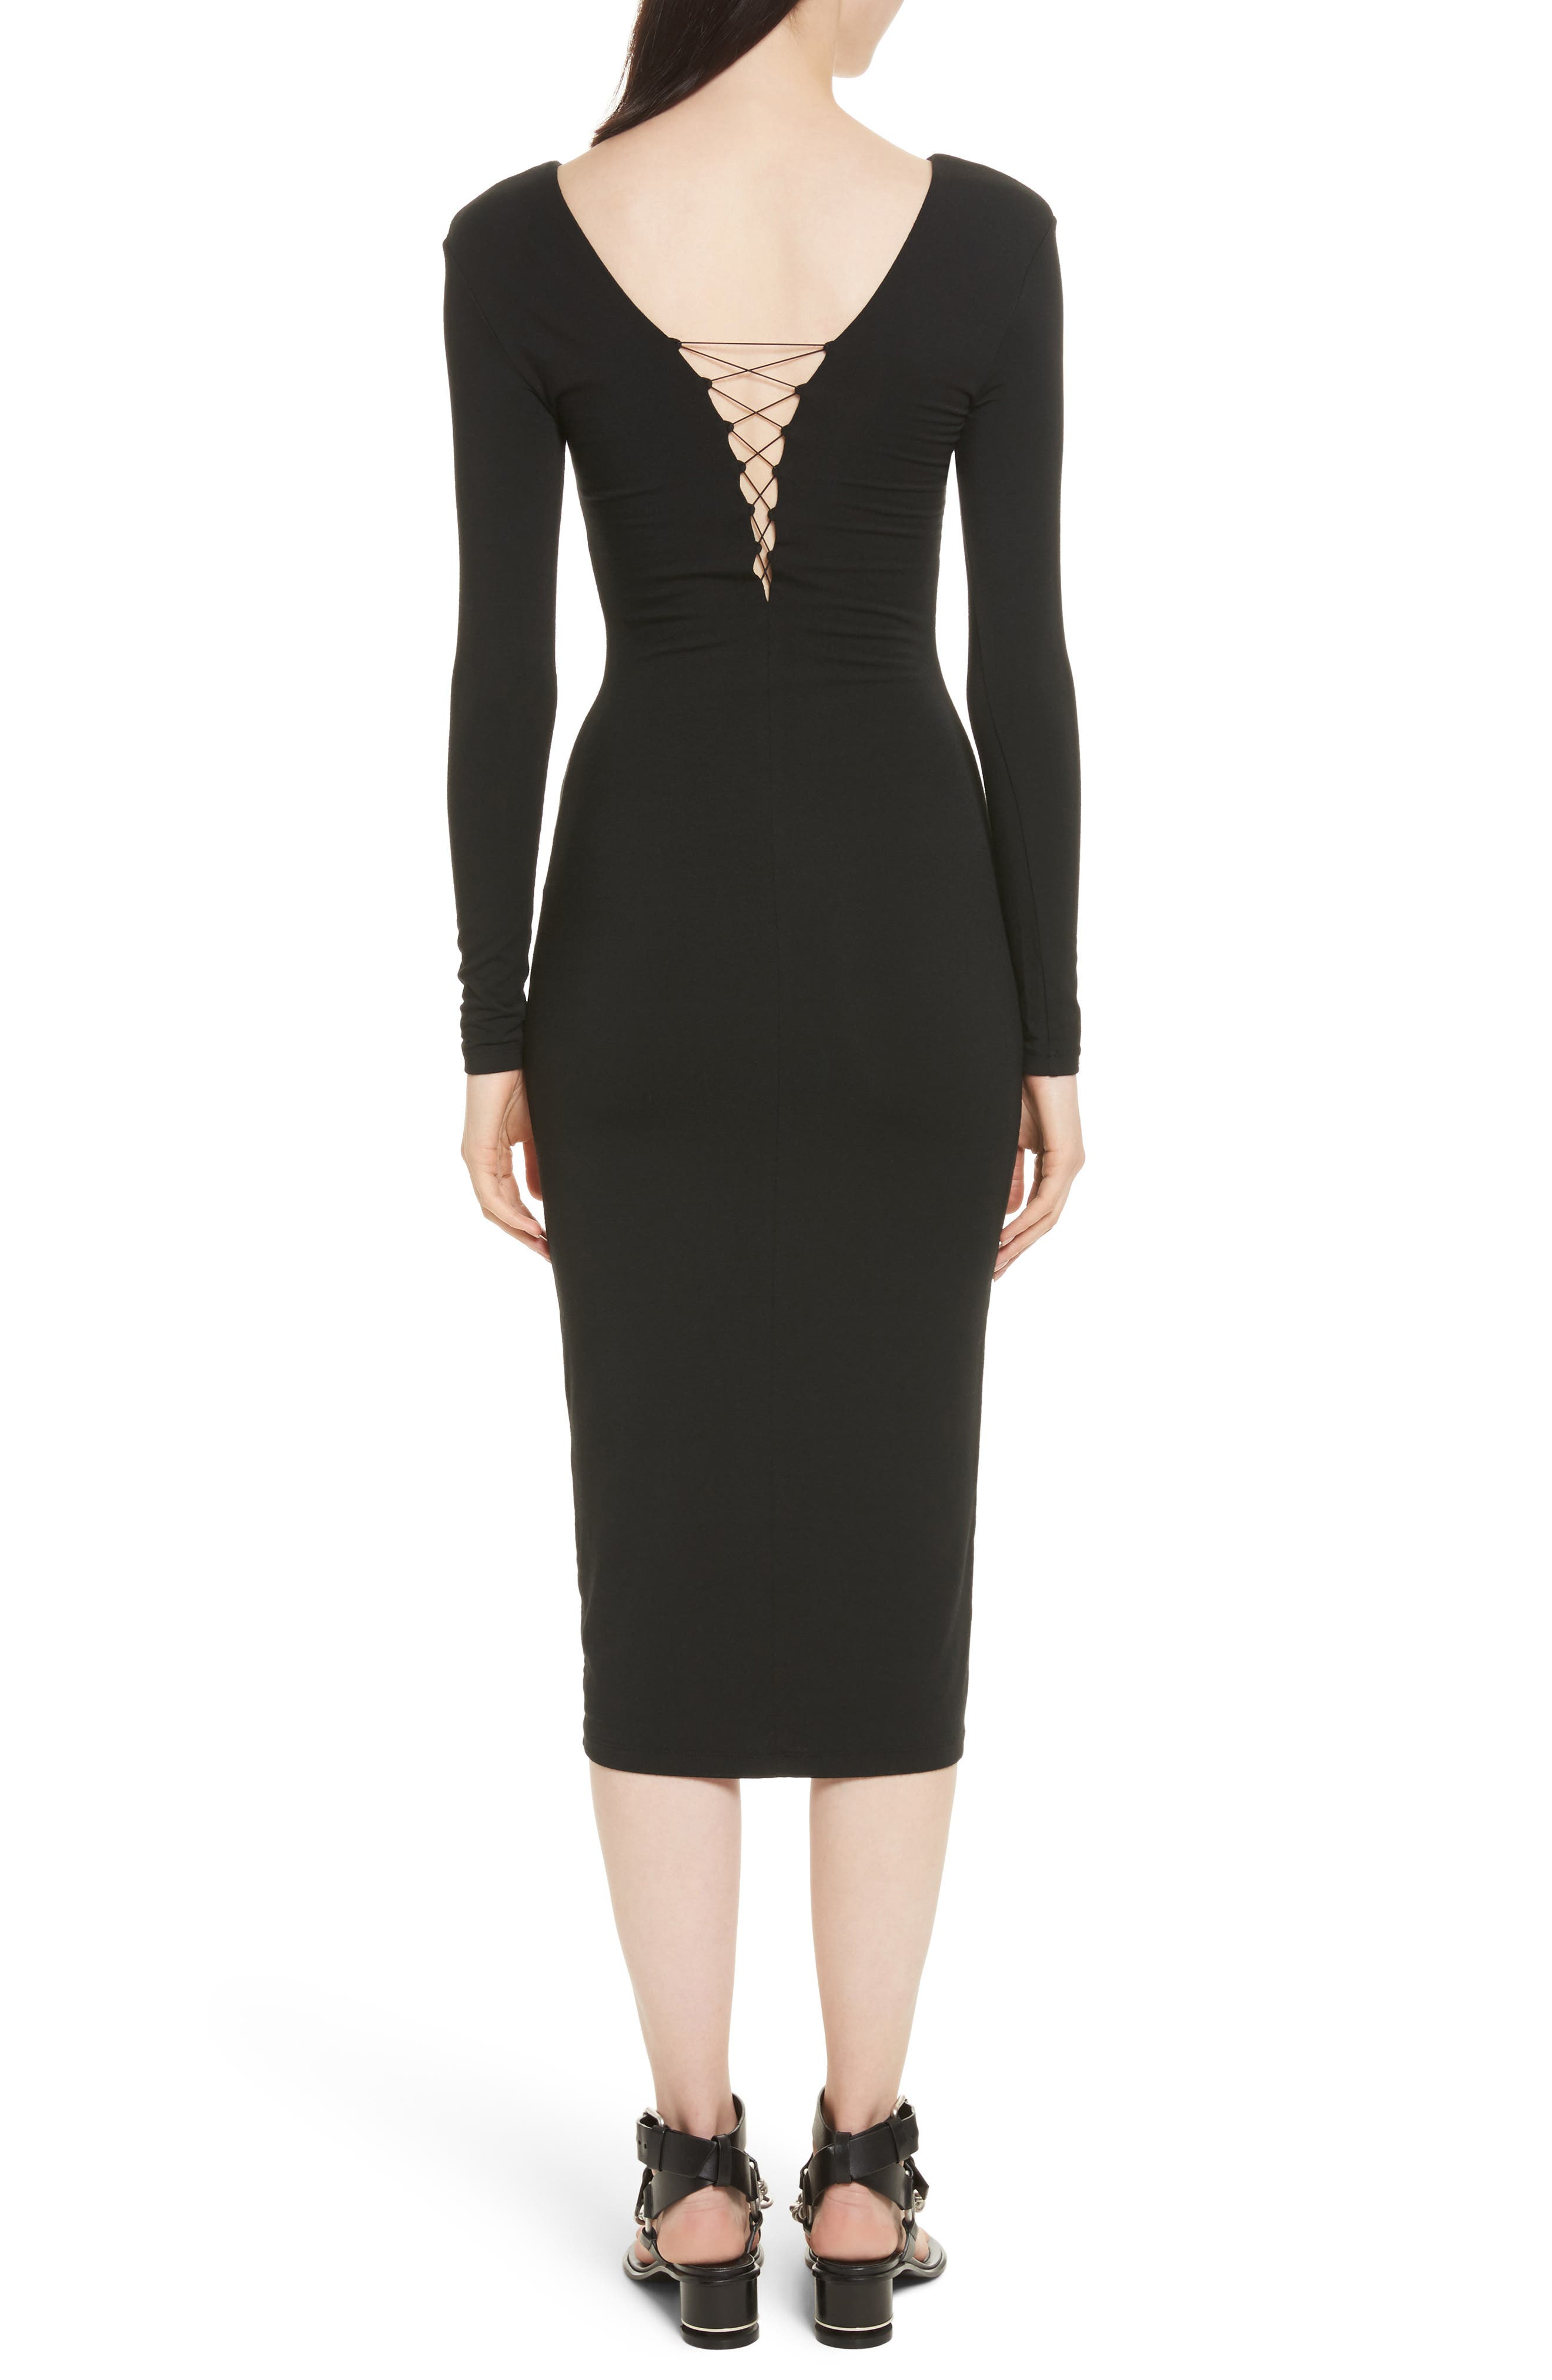 T by Alexander Wang Lace-Up Stretch Jersey Midi Dress,                             Alternate thumbnail 2, color,                             001